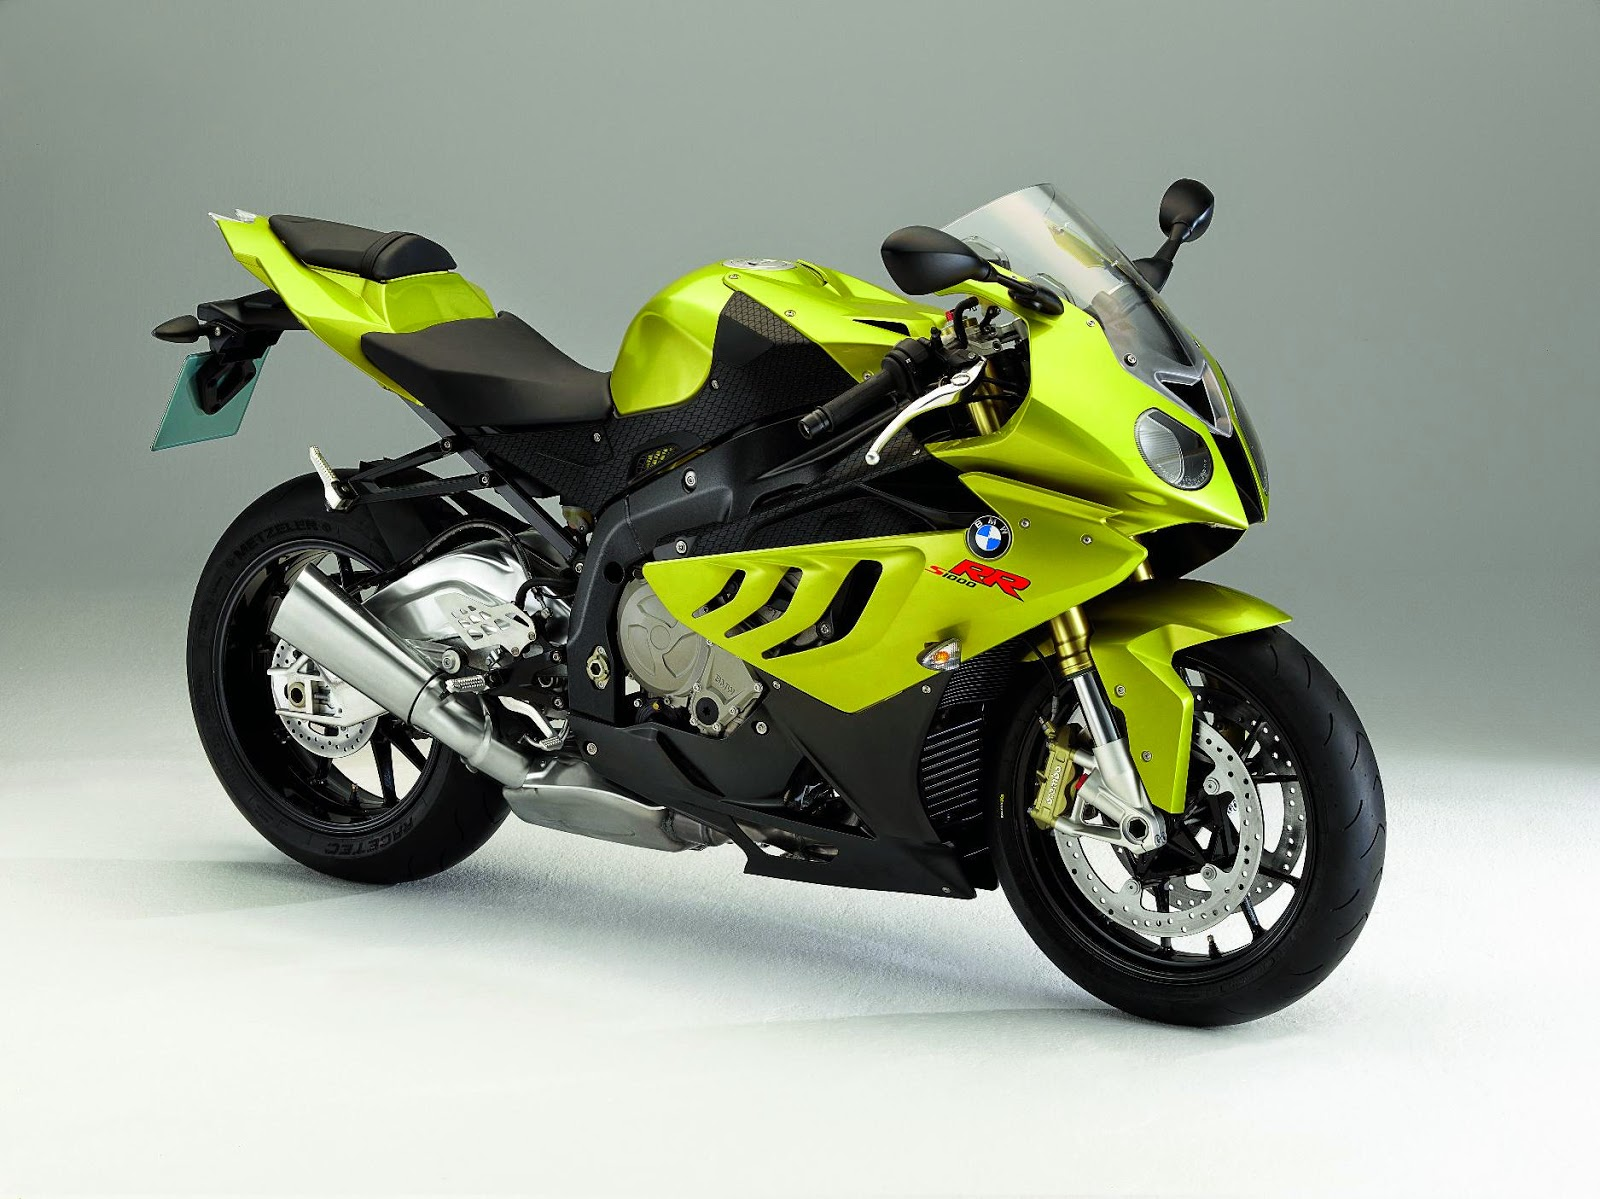 2014 BMW S1000RR Price In India, Specification, Mileage And Images